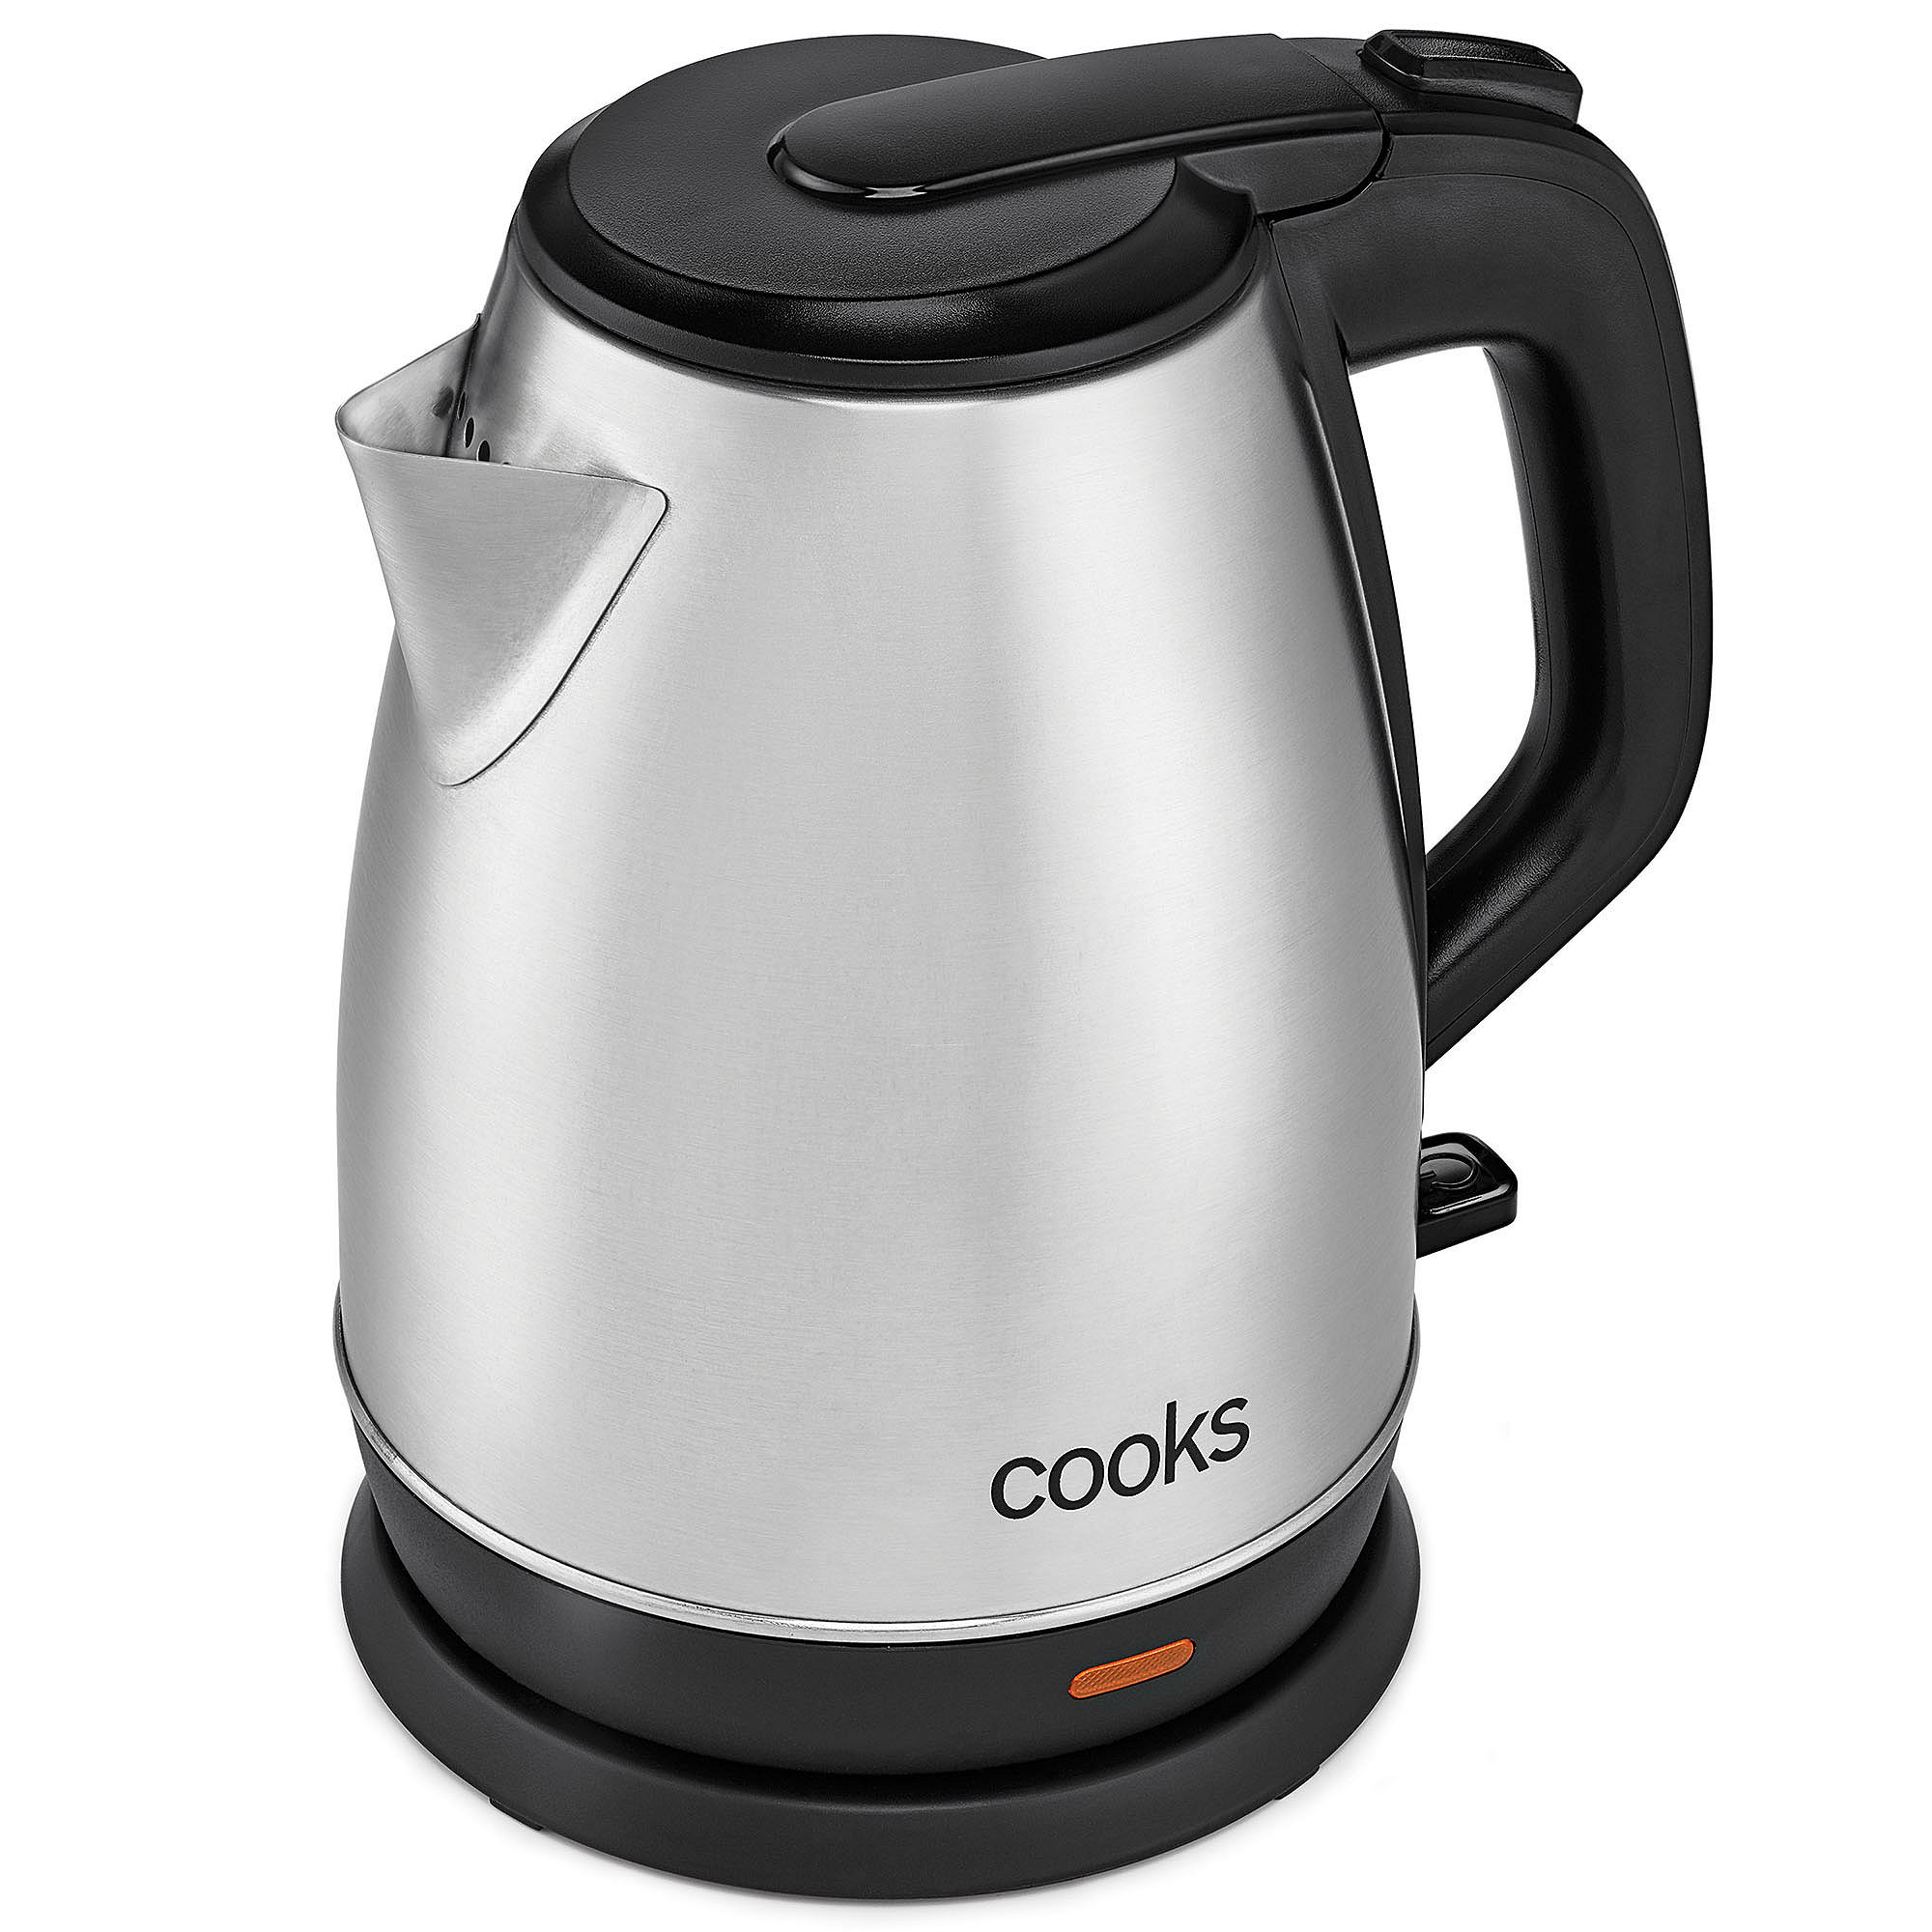 Stainless Electric Kettle ~ Upc cooks stainless steel electric kettle